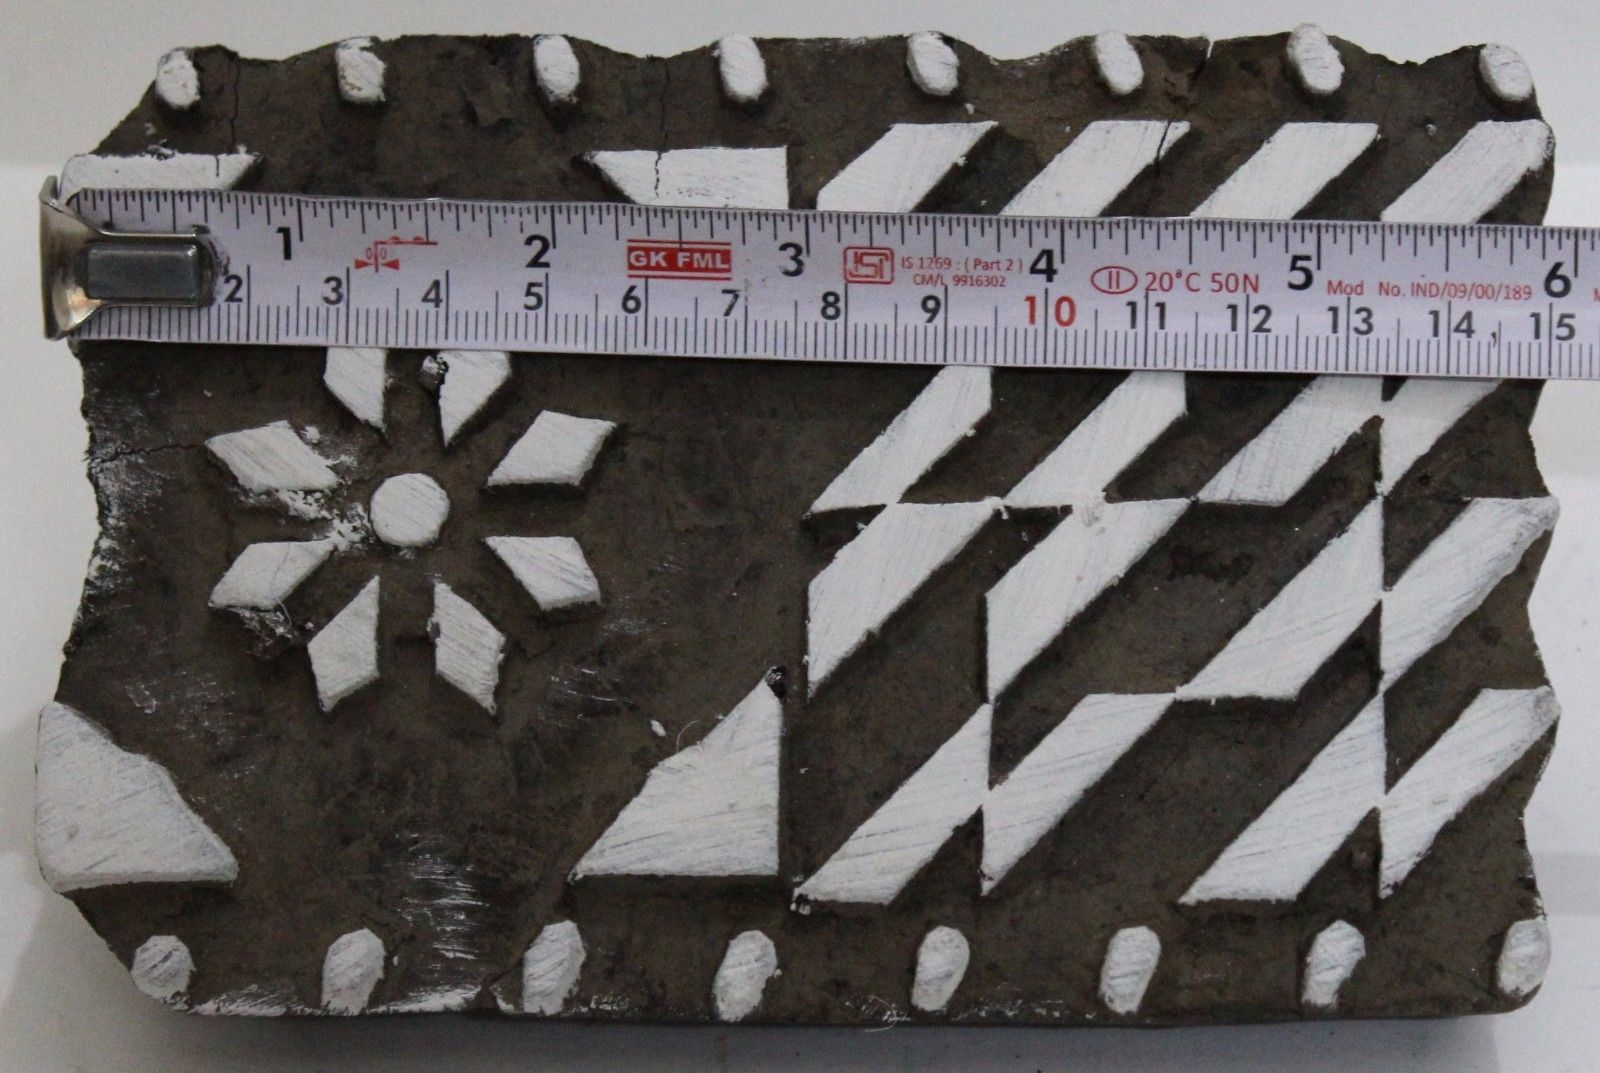 VINTAGE WOODEN HAND CURVED FABRIC PRINTING TEXTILE WOODEN BLOCK.